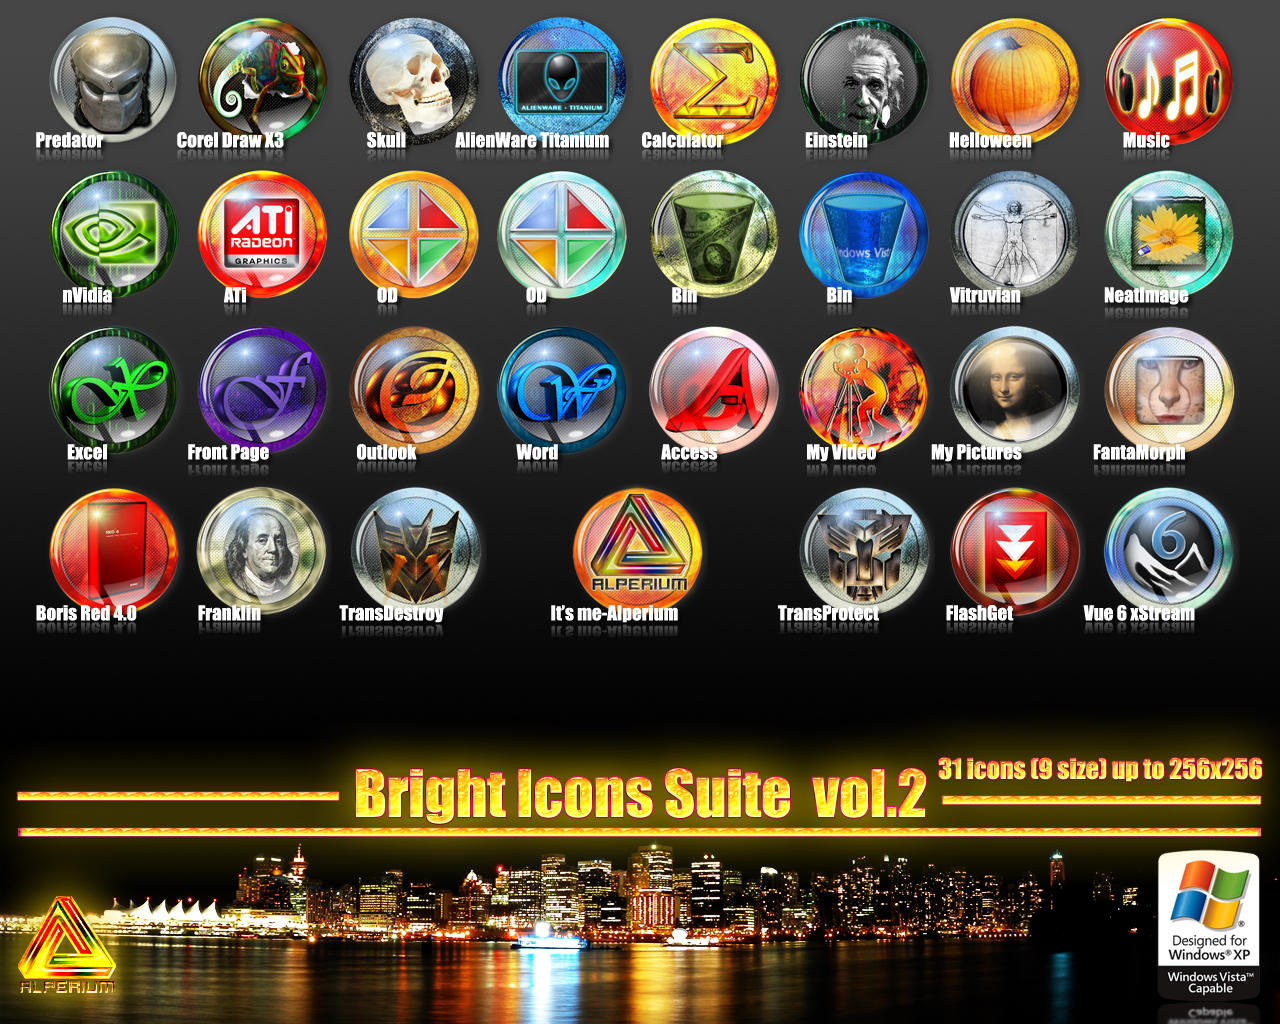 Bright Icons Suite vol.2 by klen70